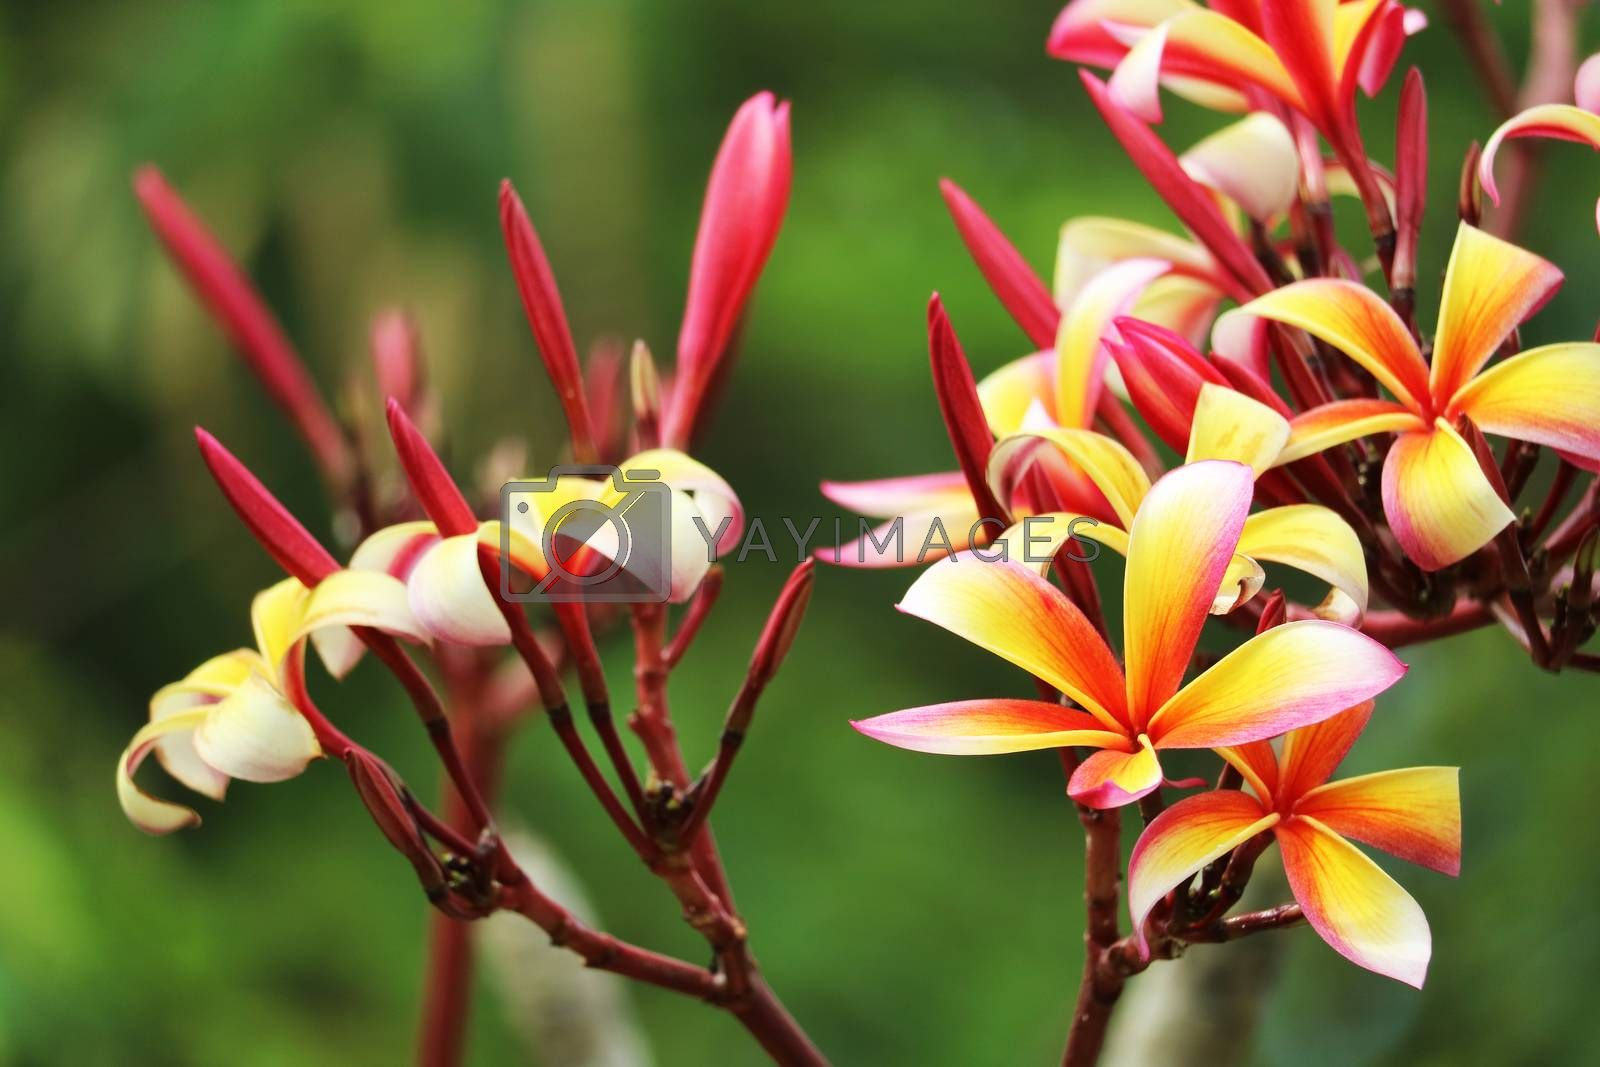 plumeria red white orange yellow bouquet flower blooming in the park